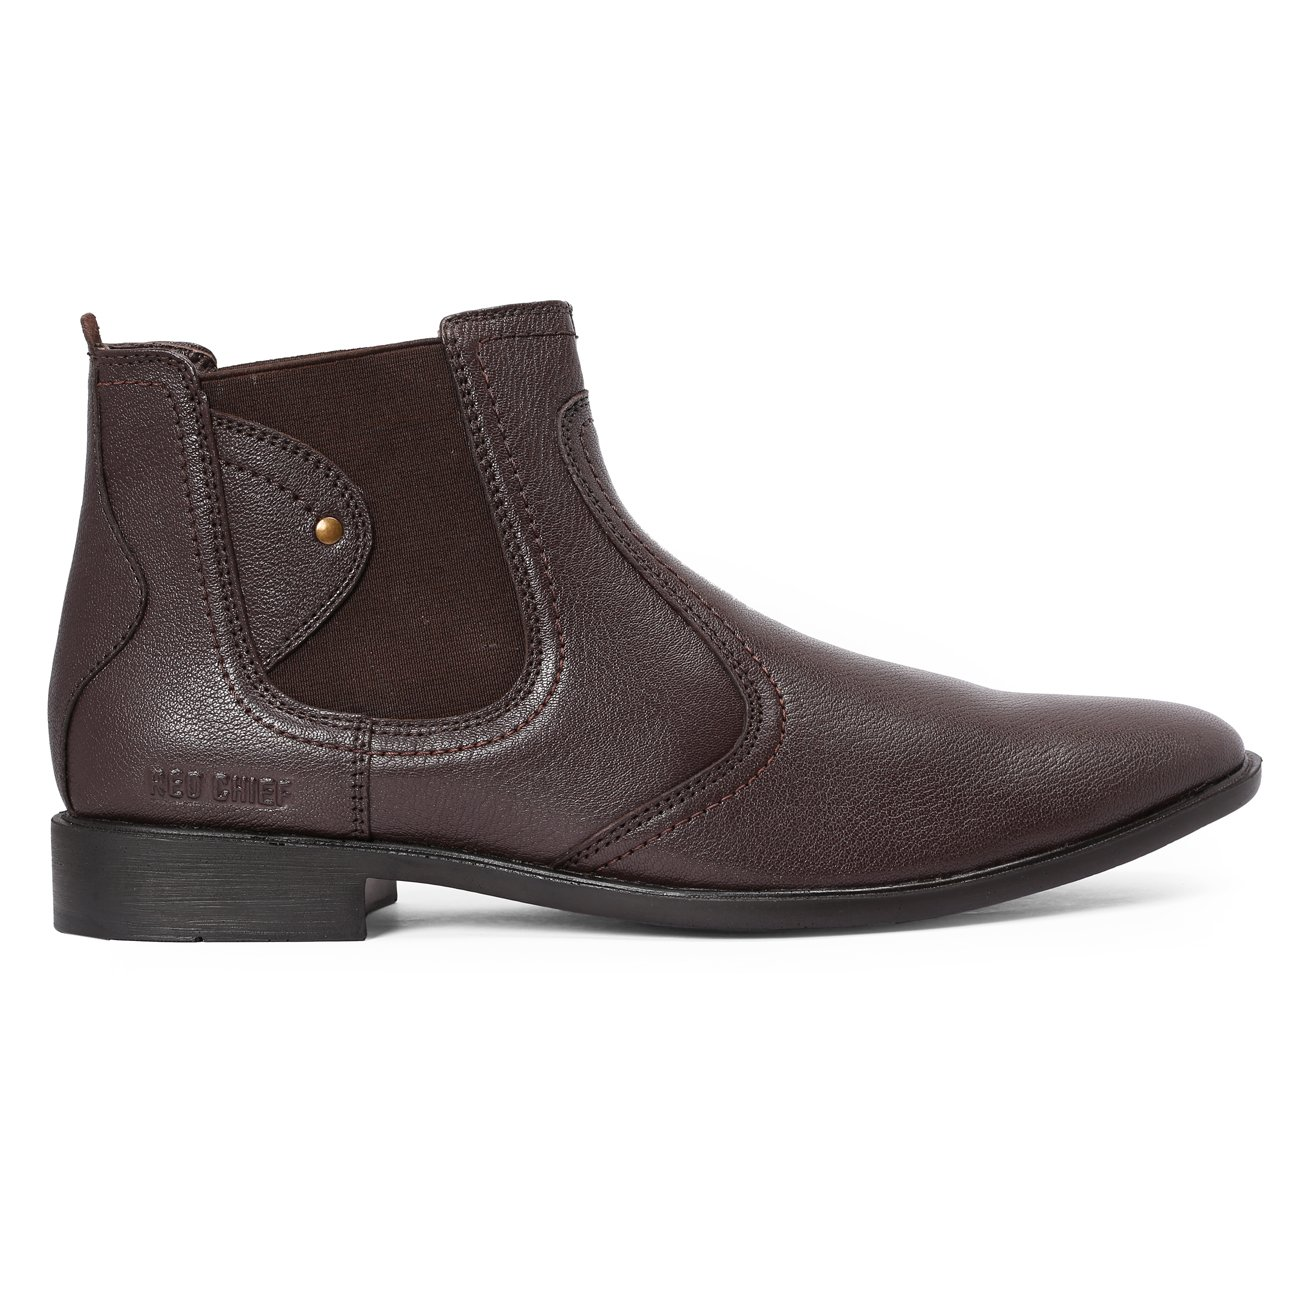 240f889fec65c Red Chief Men's Brown Leather Formal Shoes-11 UK/India (45 EU) (RC3498  003): Buy Online at Low Prices in India - Amazon.in